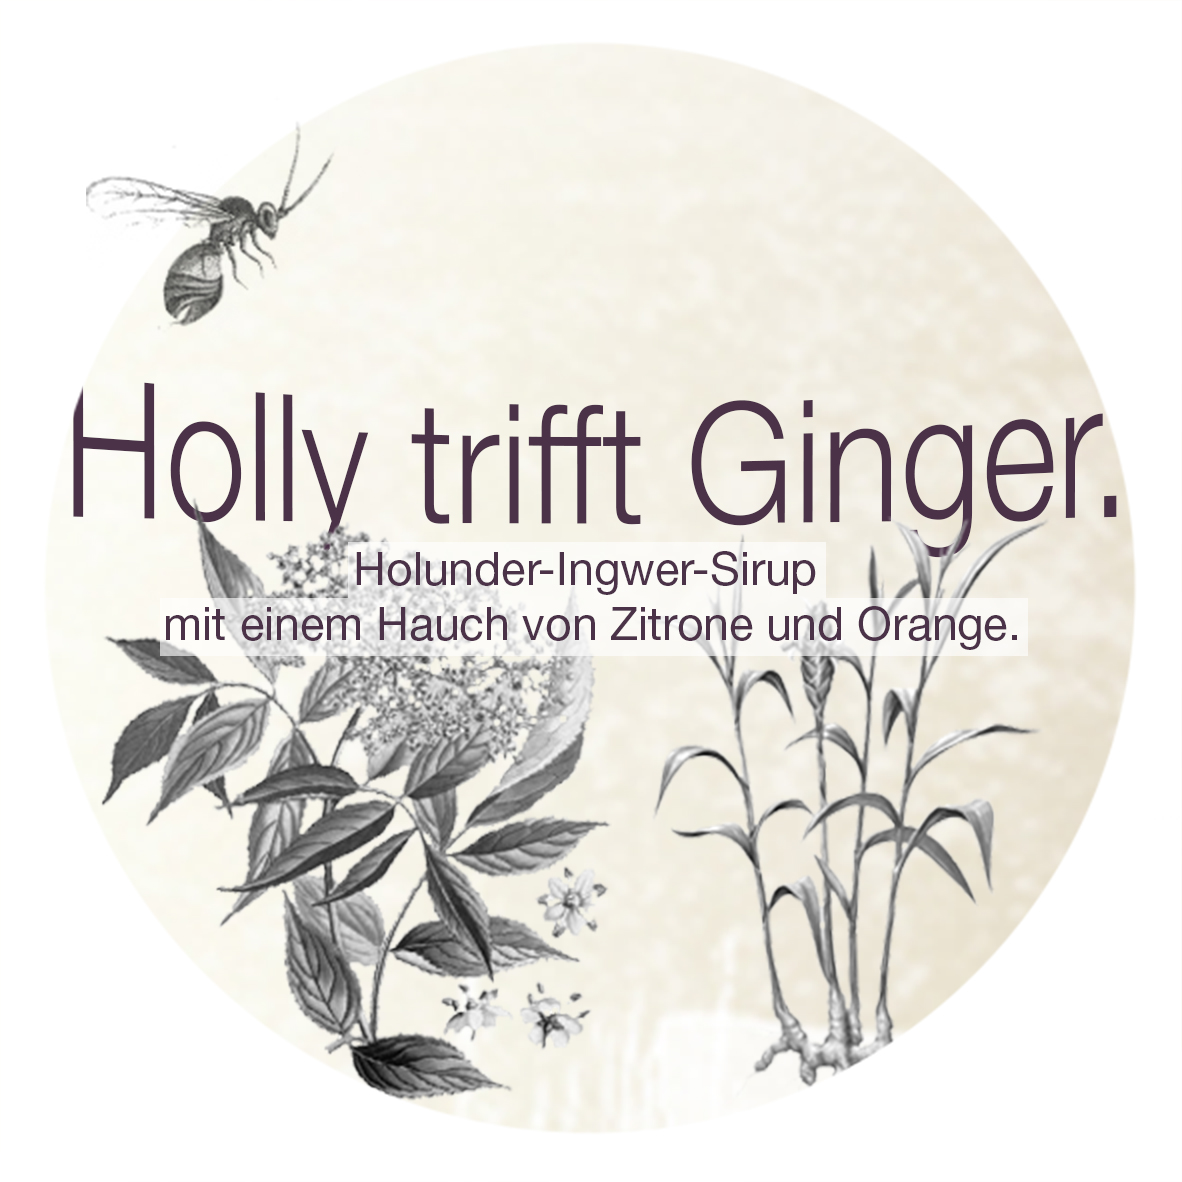 Holly trifft Ginger. | Etikett.